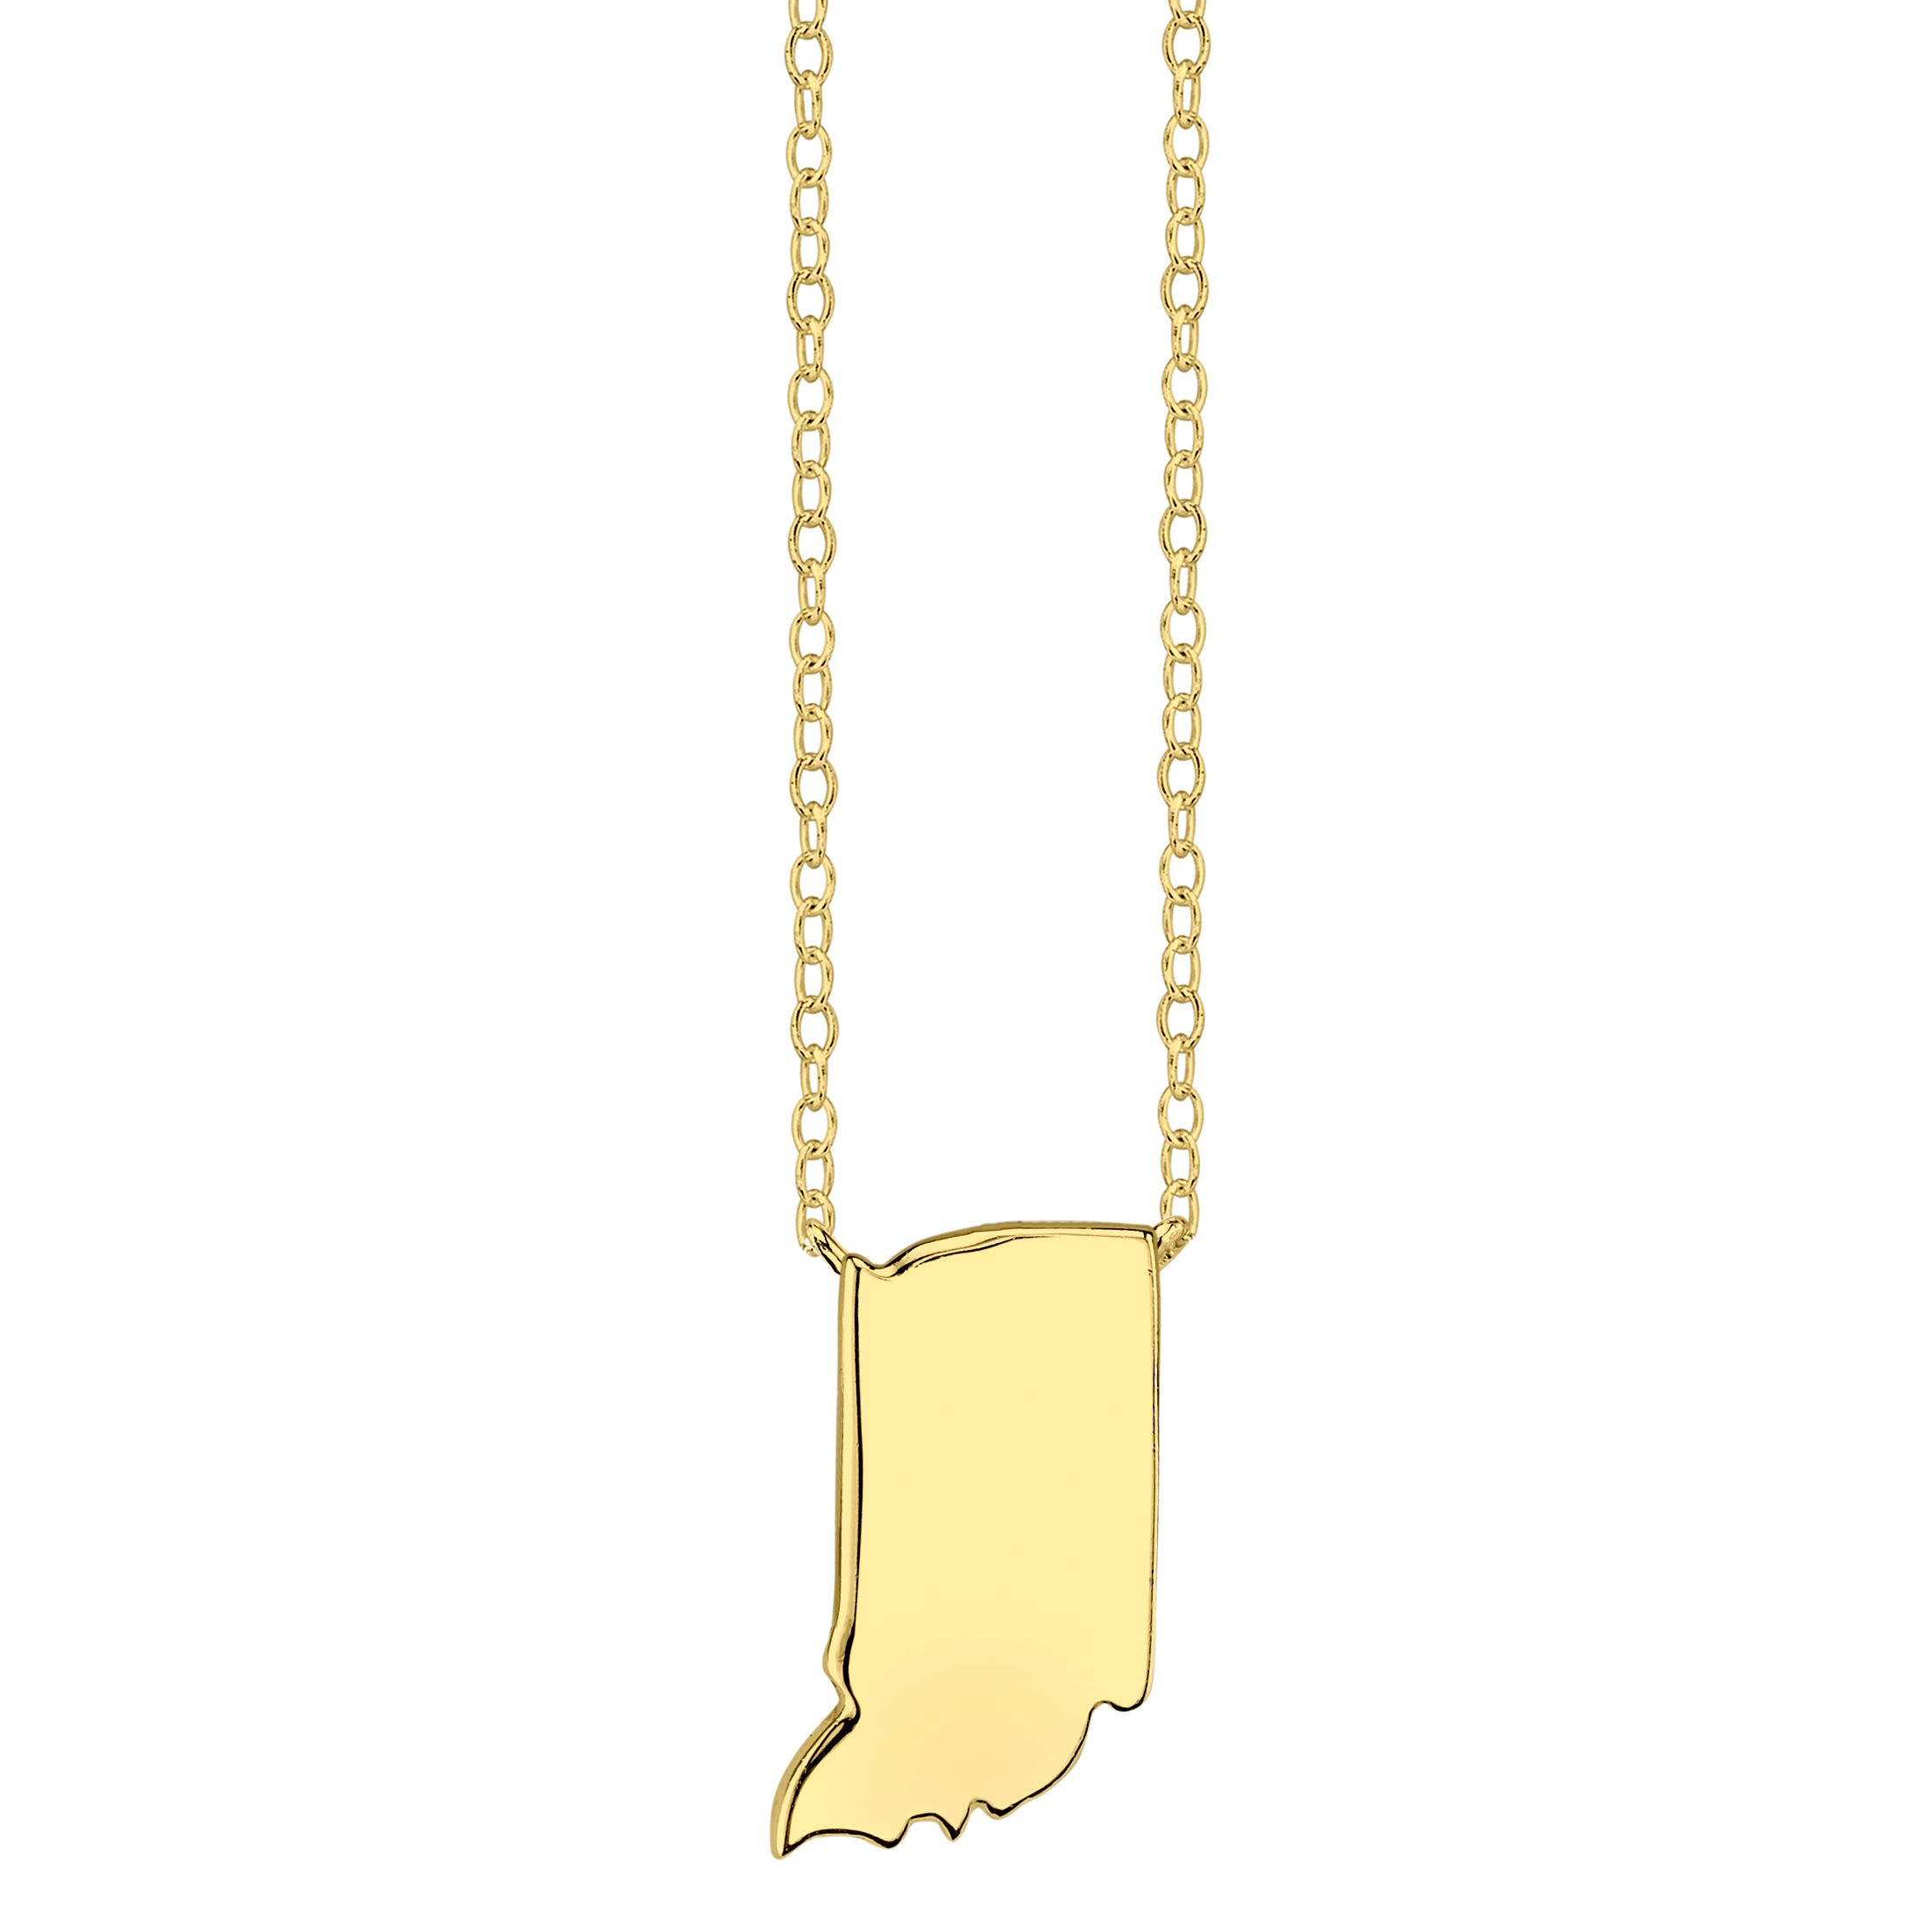 Indiana State Pendant Necklace in Yellow Gold Plated Sterling Silver